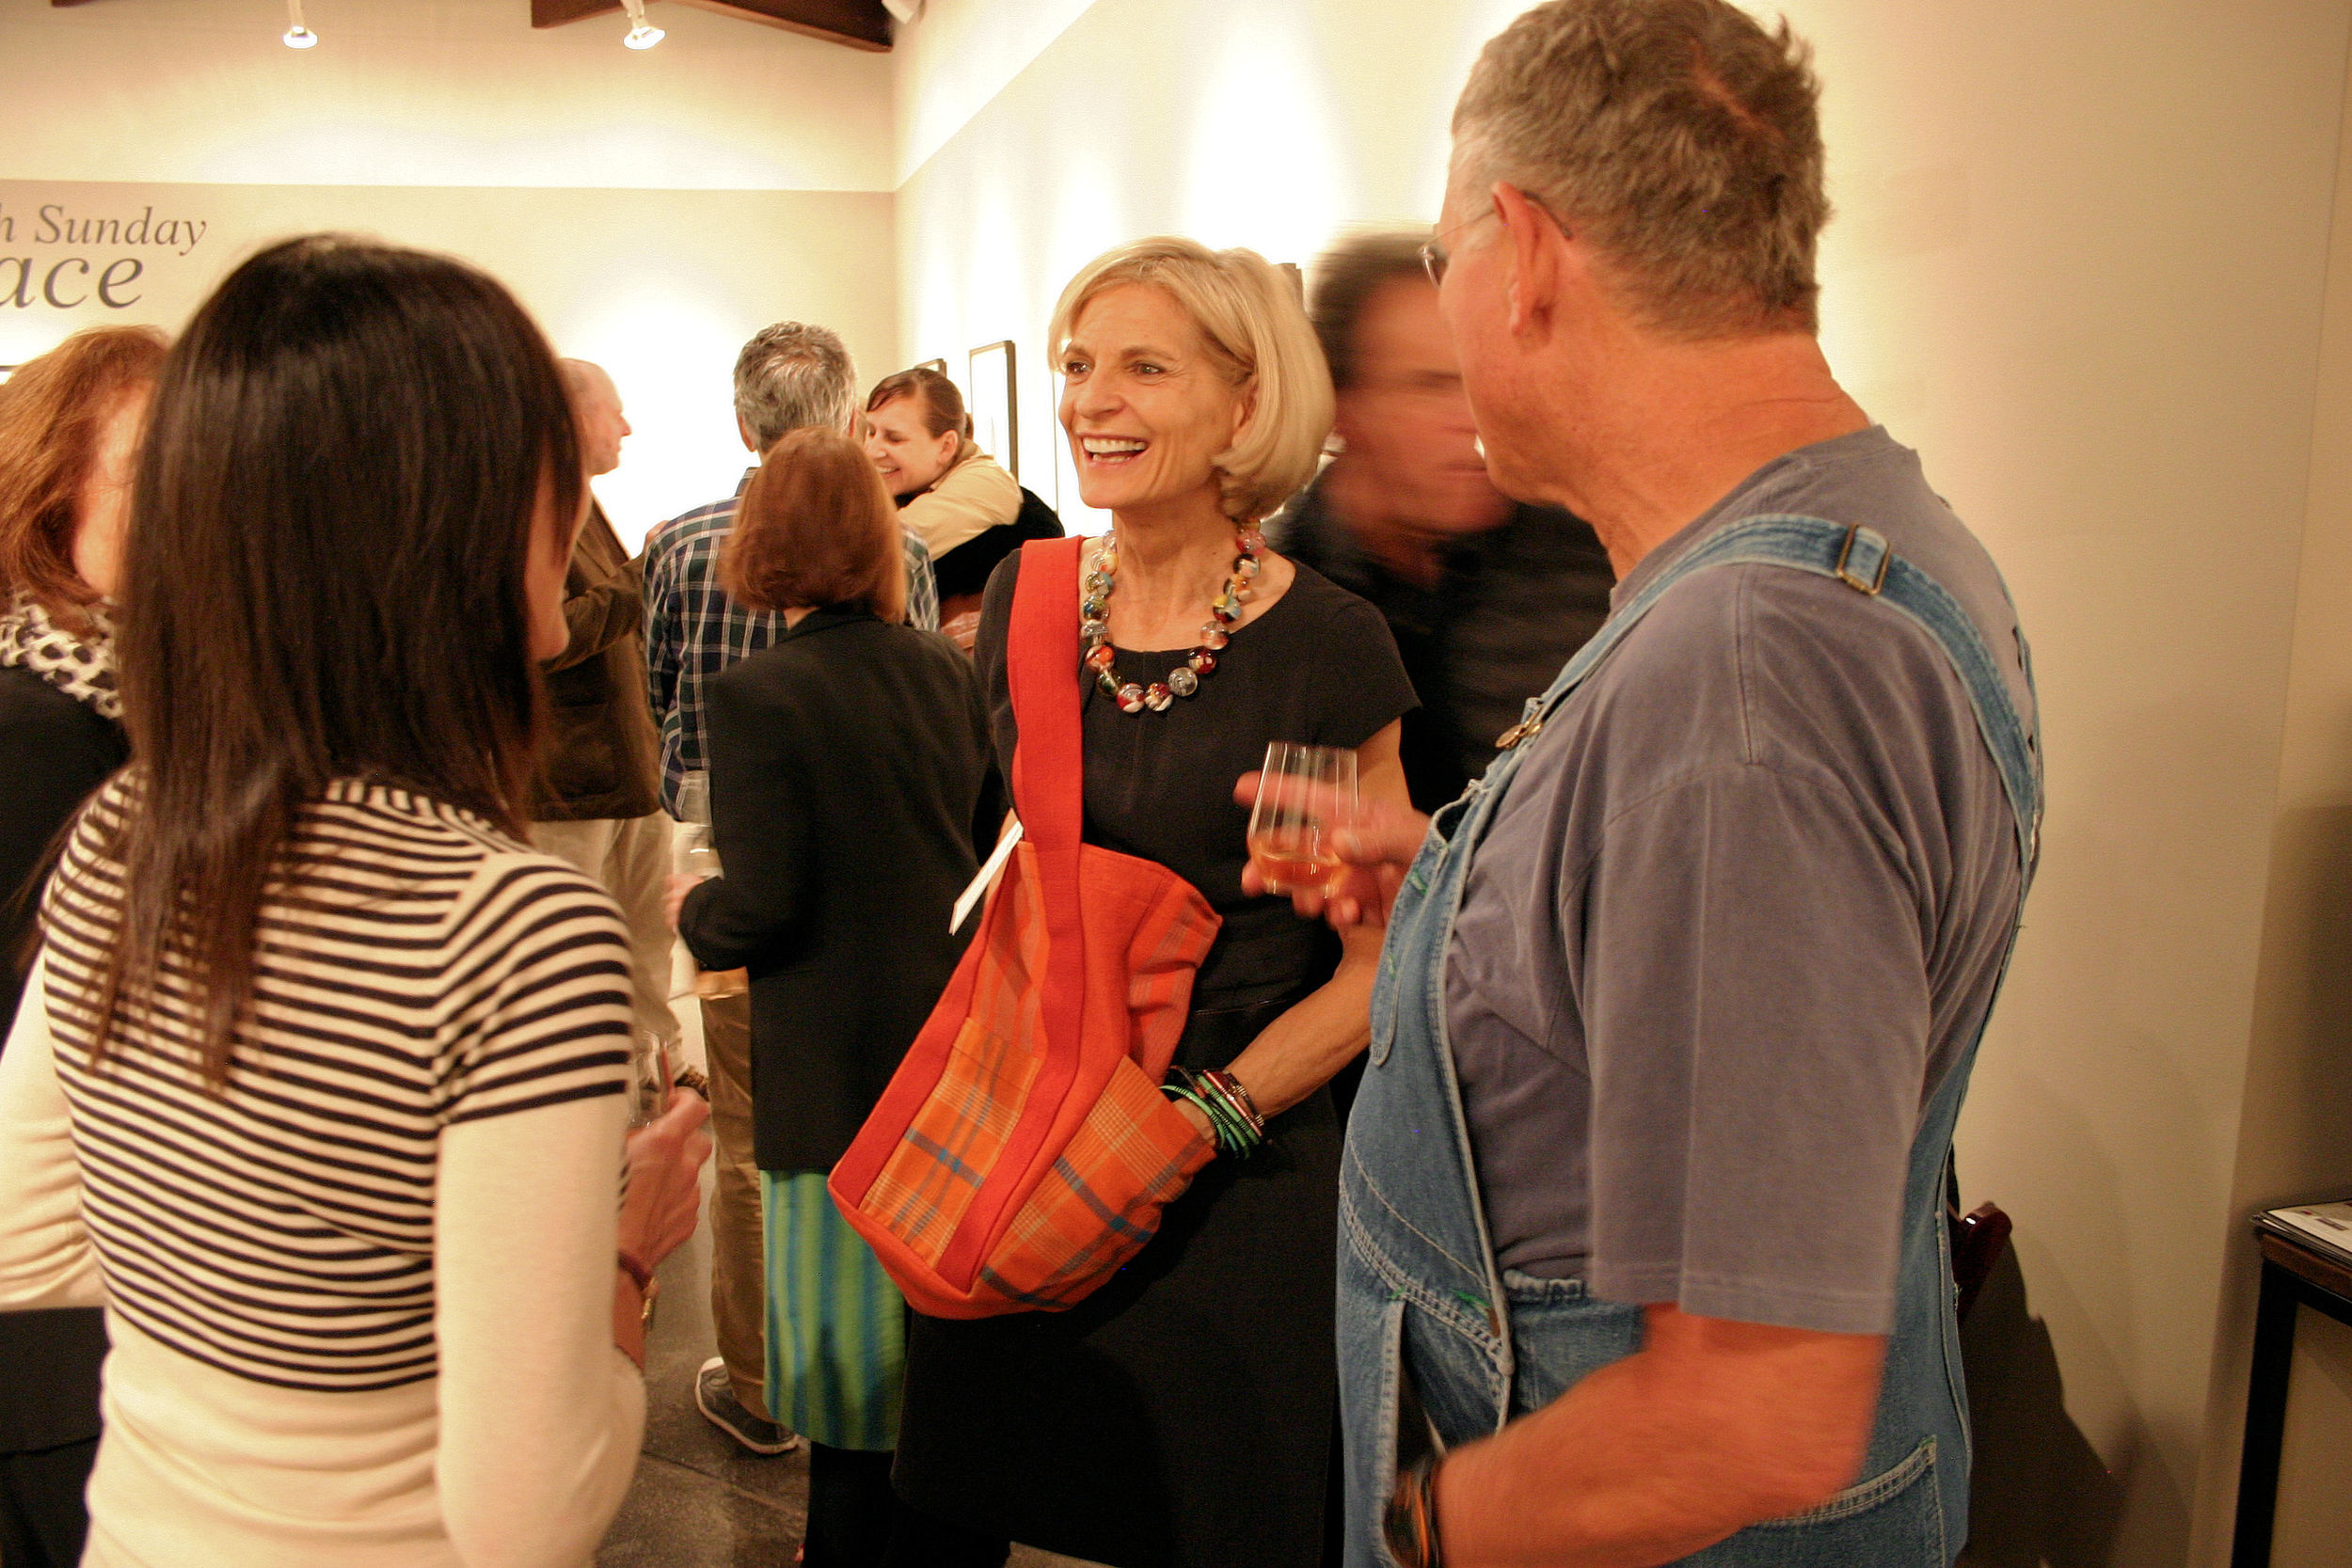 LD at PF Gallery with Mkt Bag.JPG